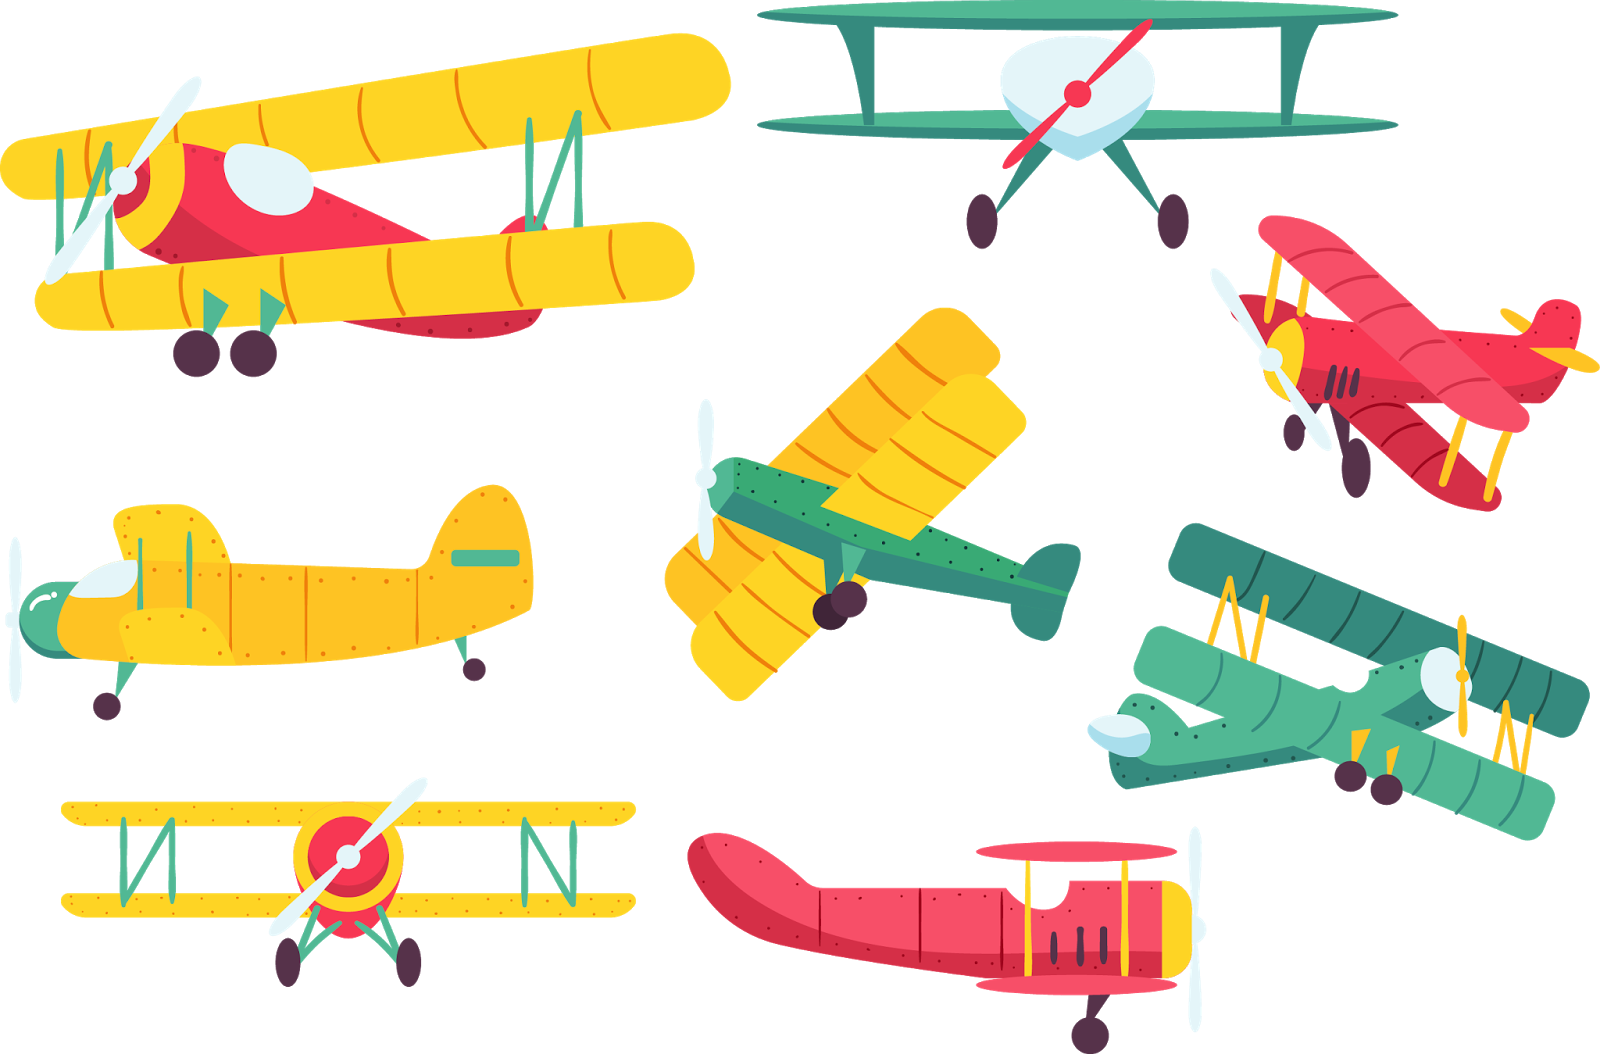 Biplane clipart vintage. Pin by anne luckey